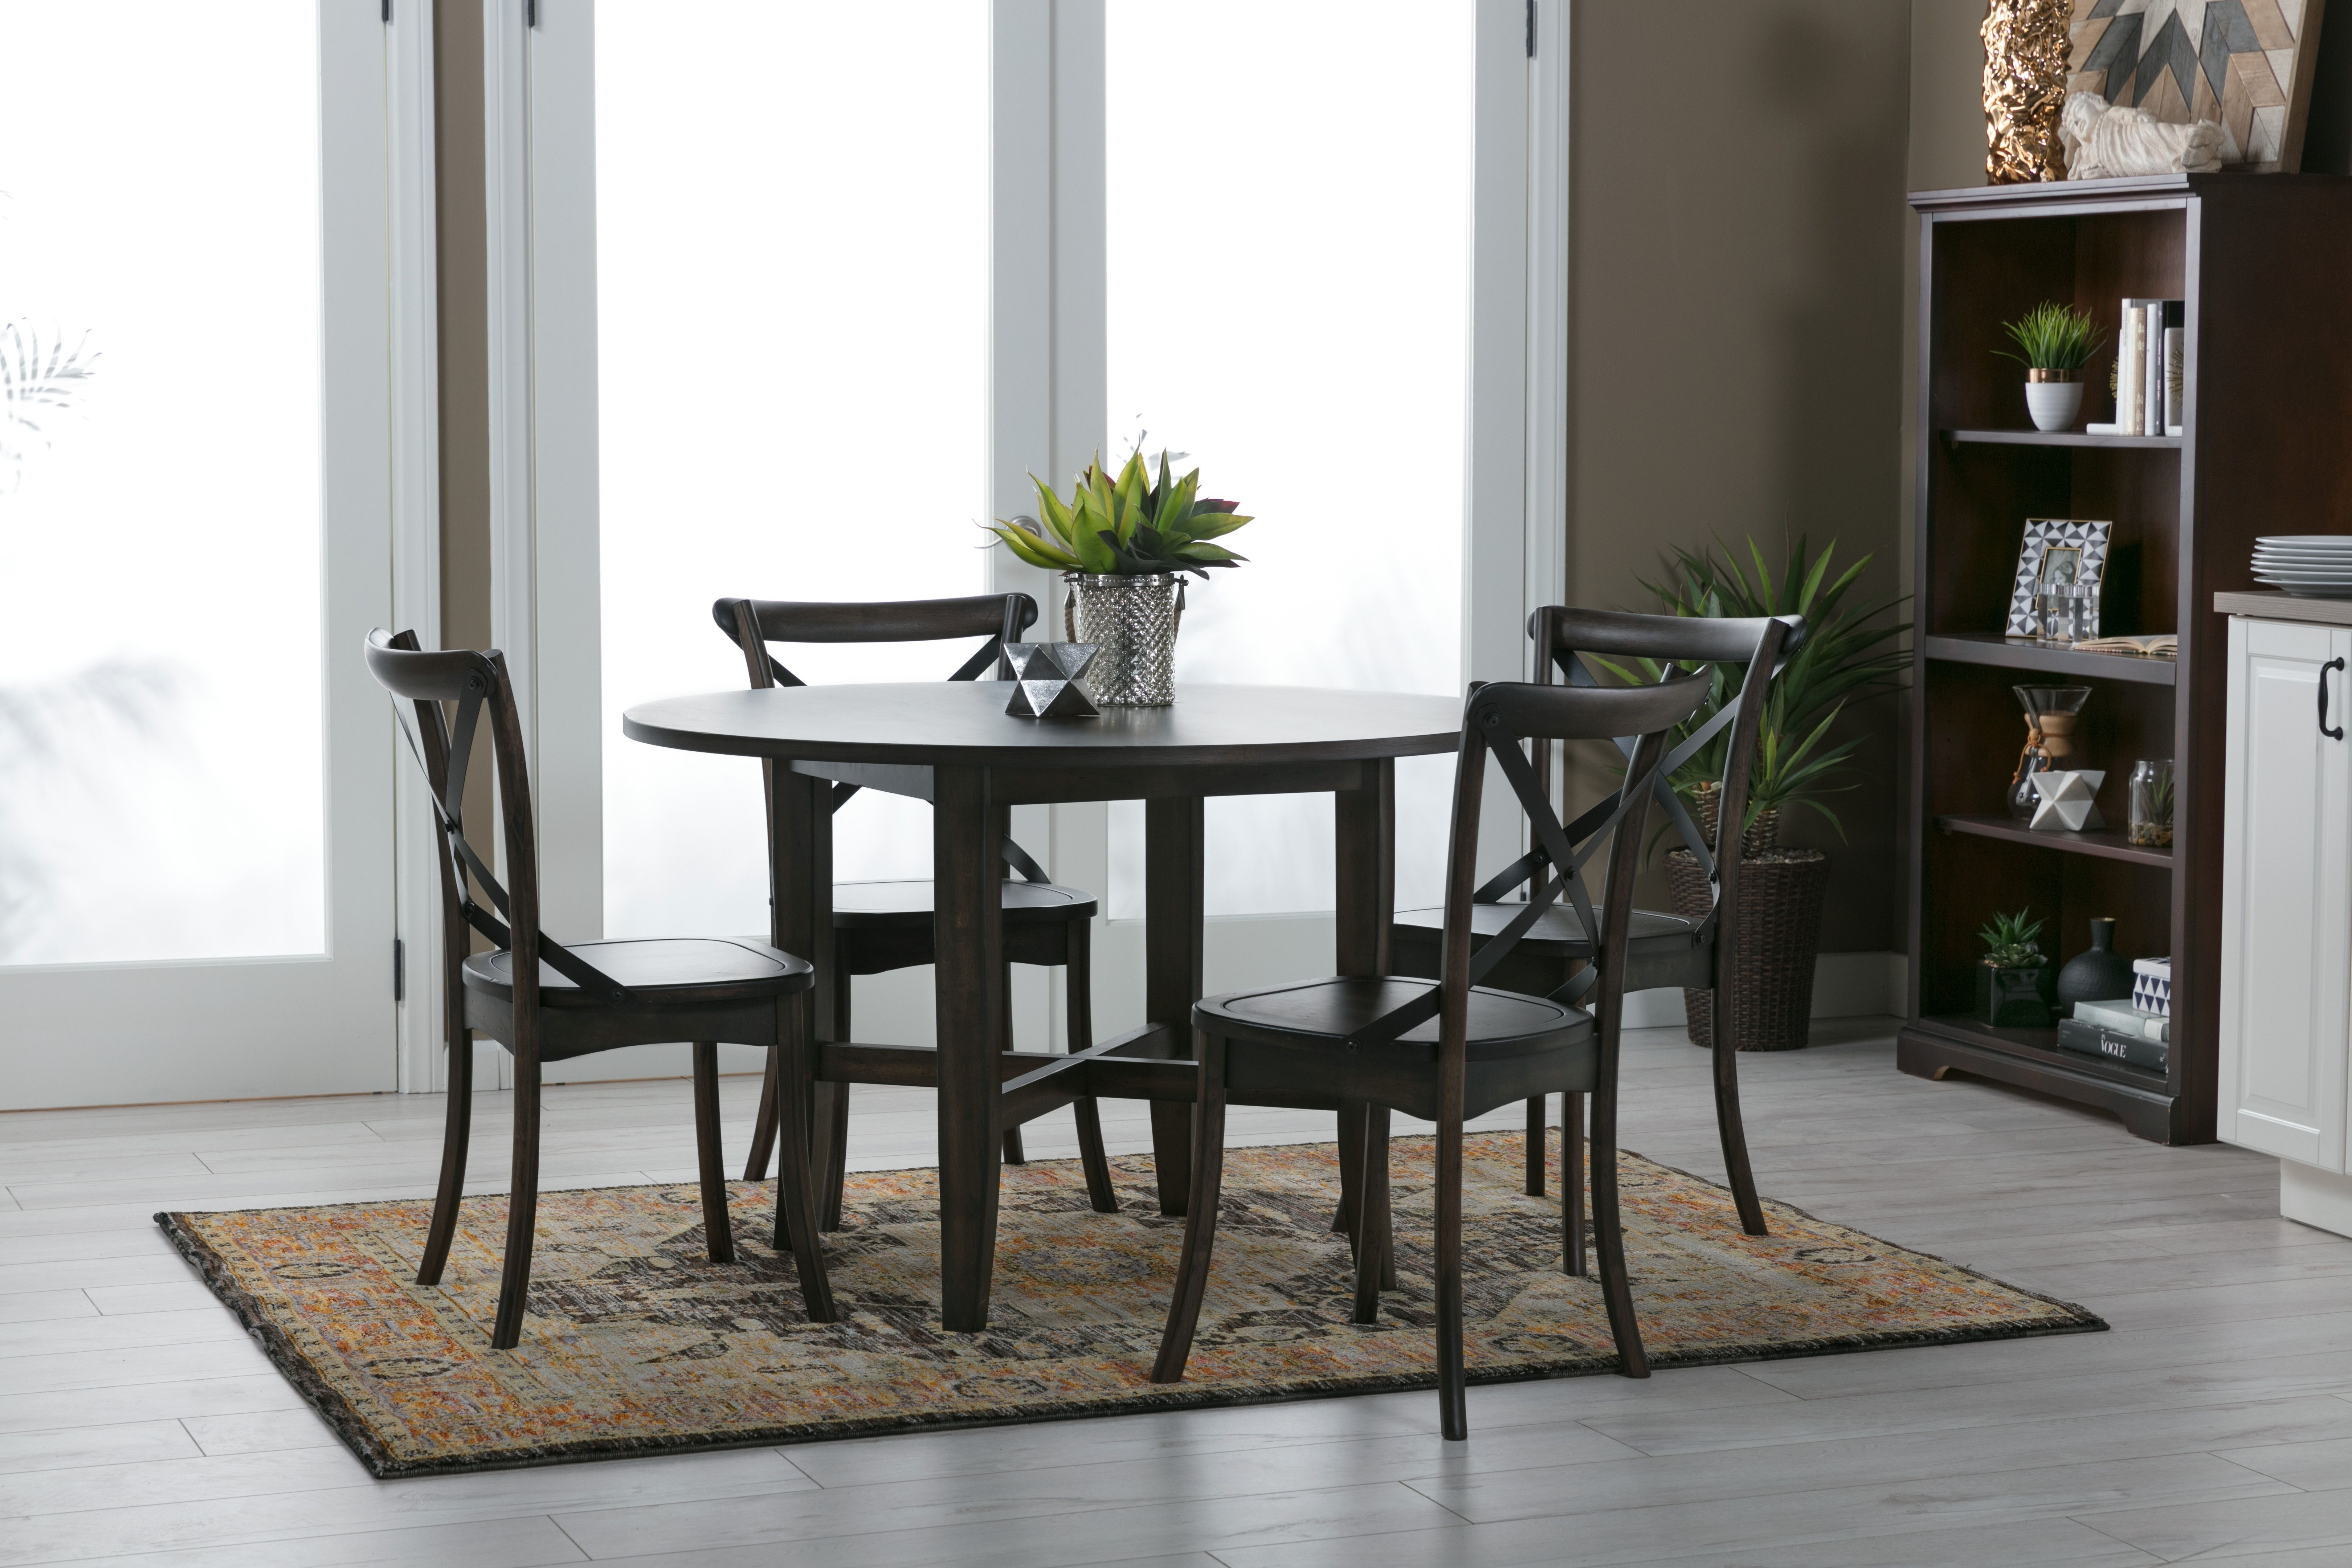 Grady Round Dining Table | Products | Pinterest | Dining Set, Dining In Best And Newest Grady 5 Piece Round Dining Sets (Photo 2 of 20)